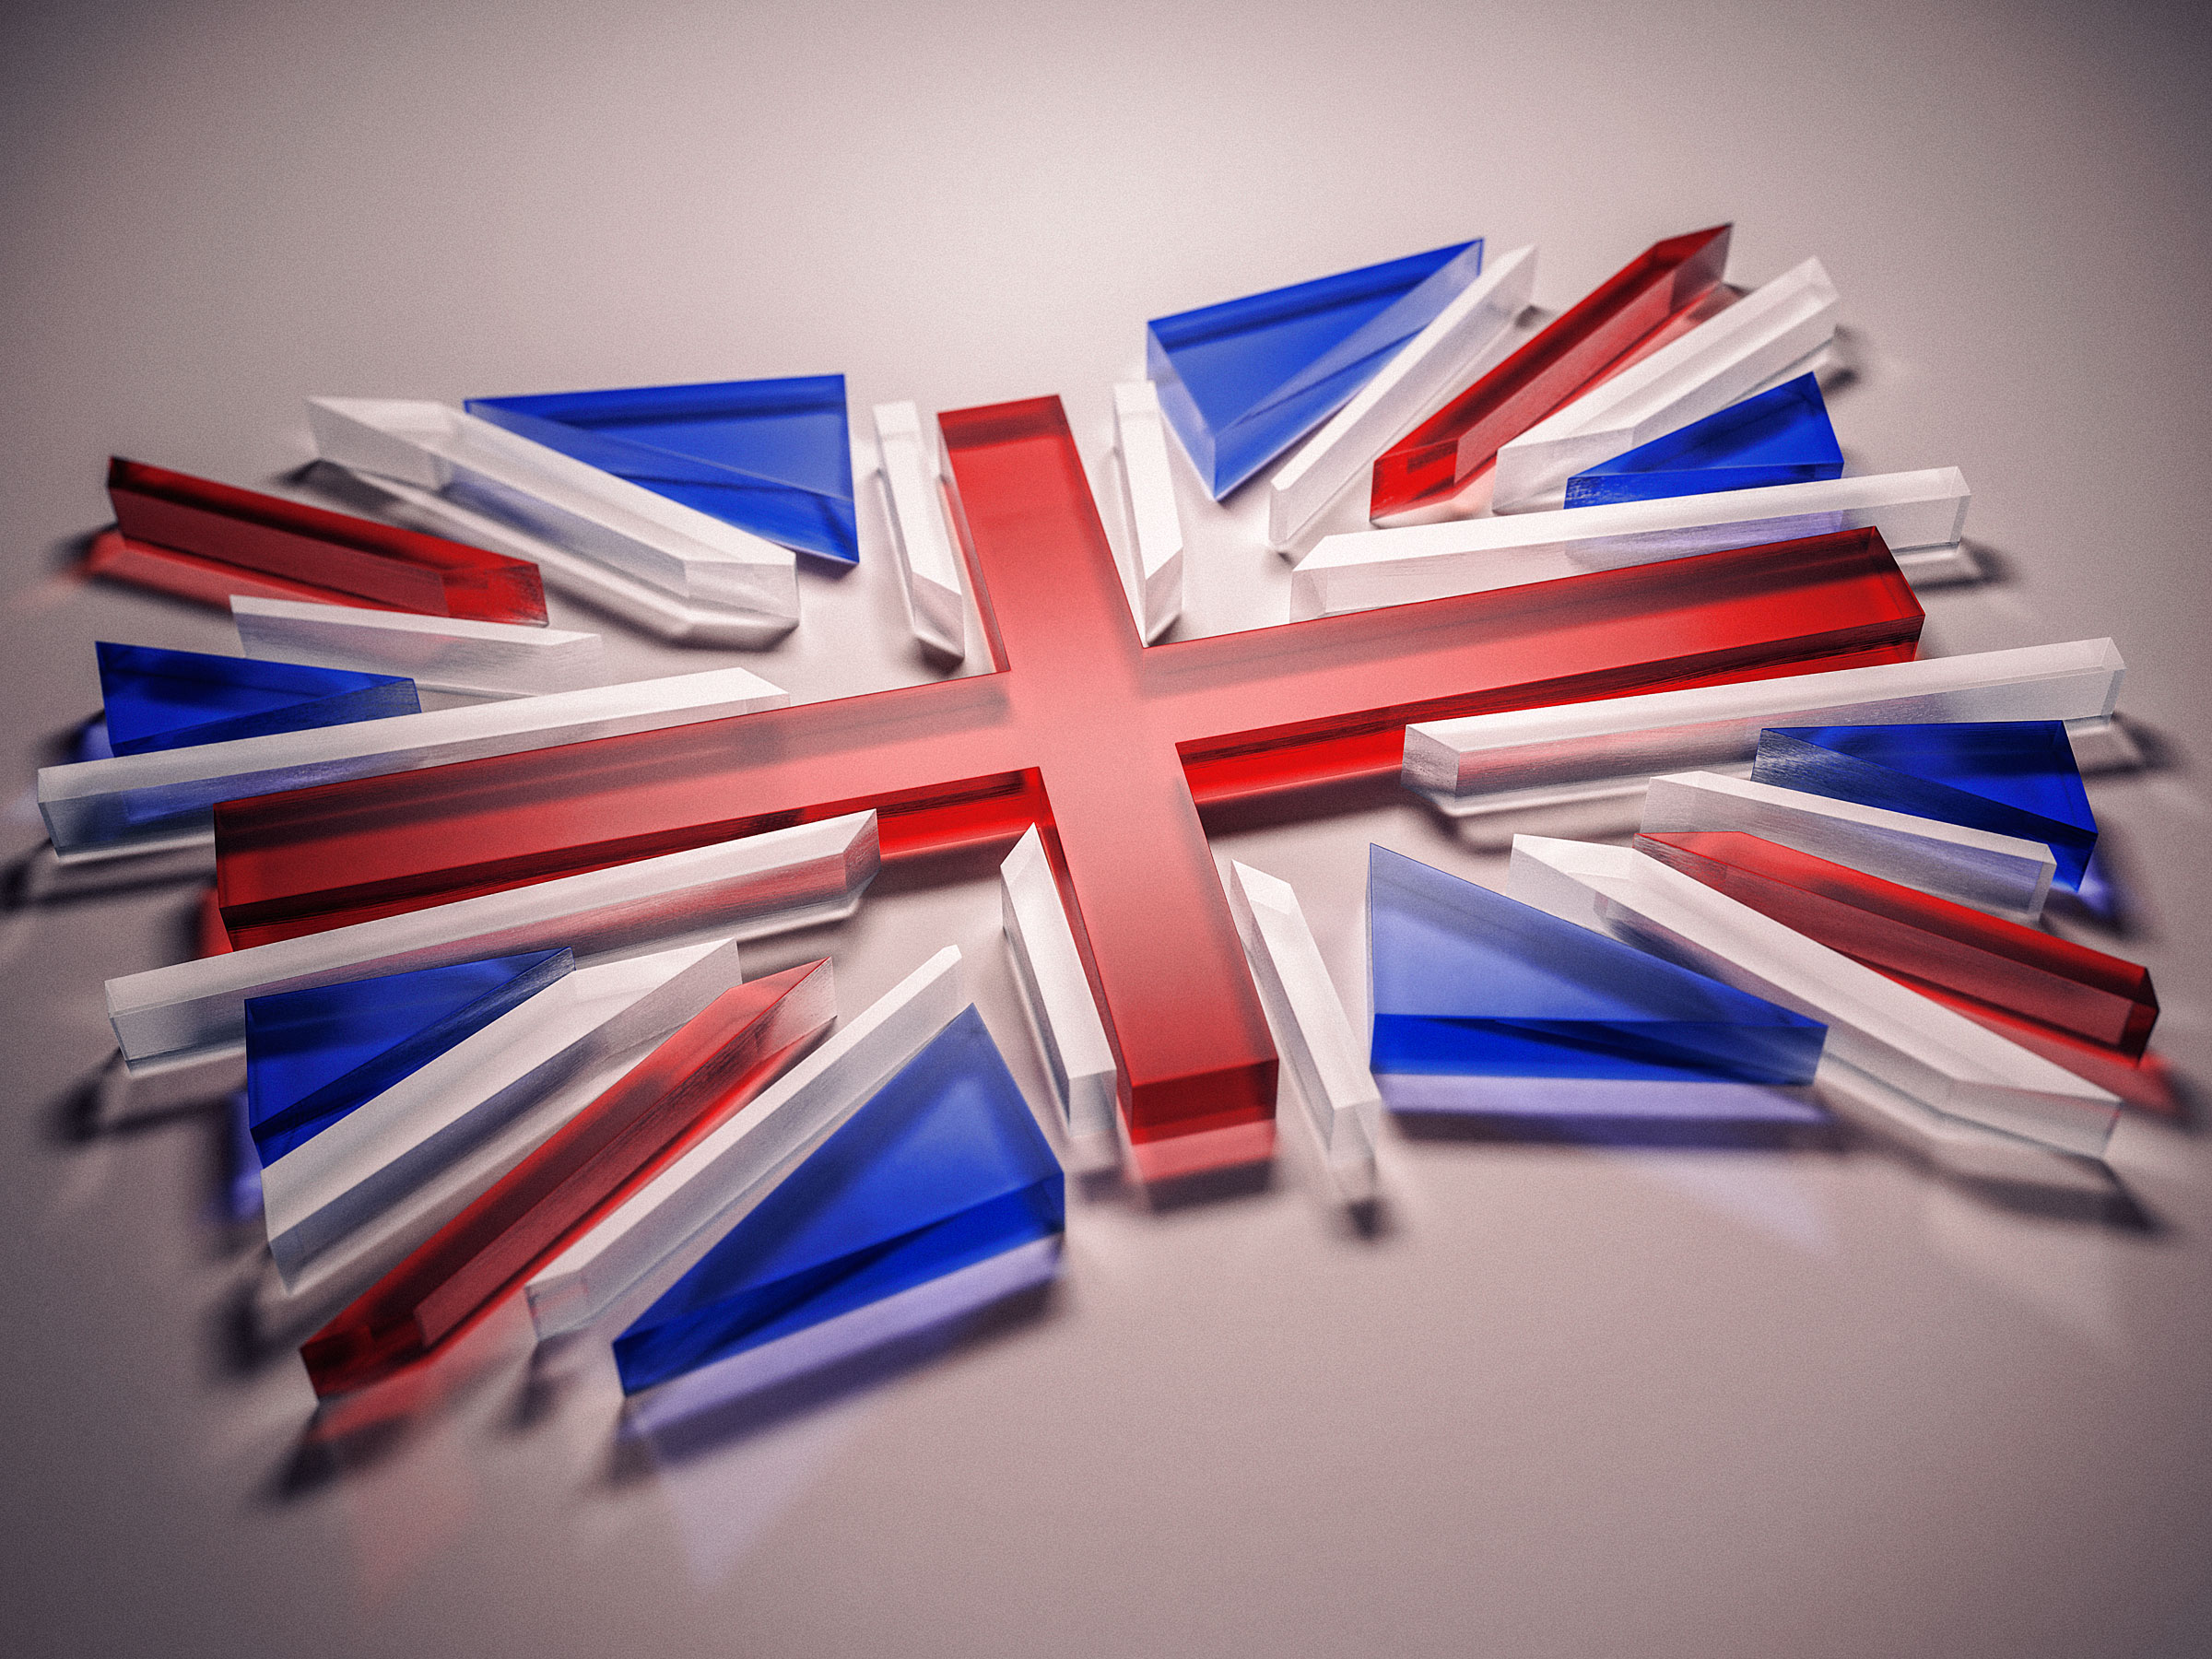 union_jack_tank_cgi_glass_broken_shards_scatter_scottish_independance_02